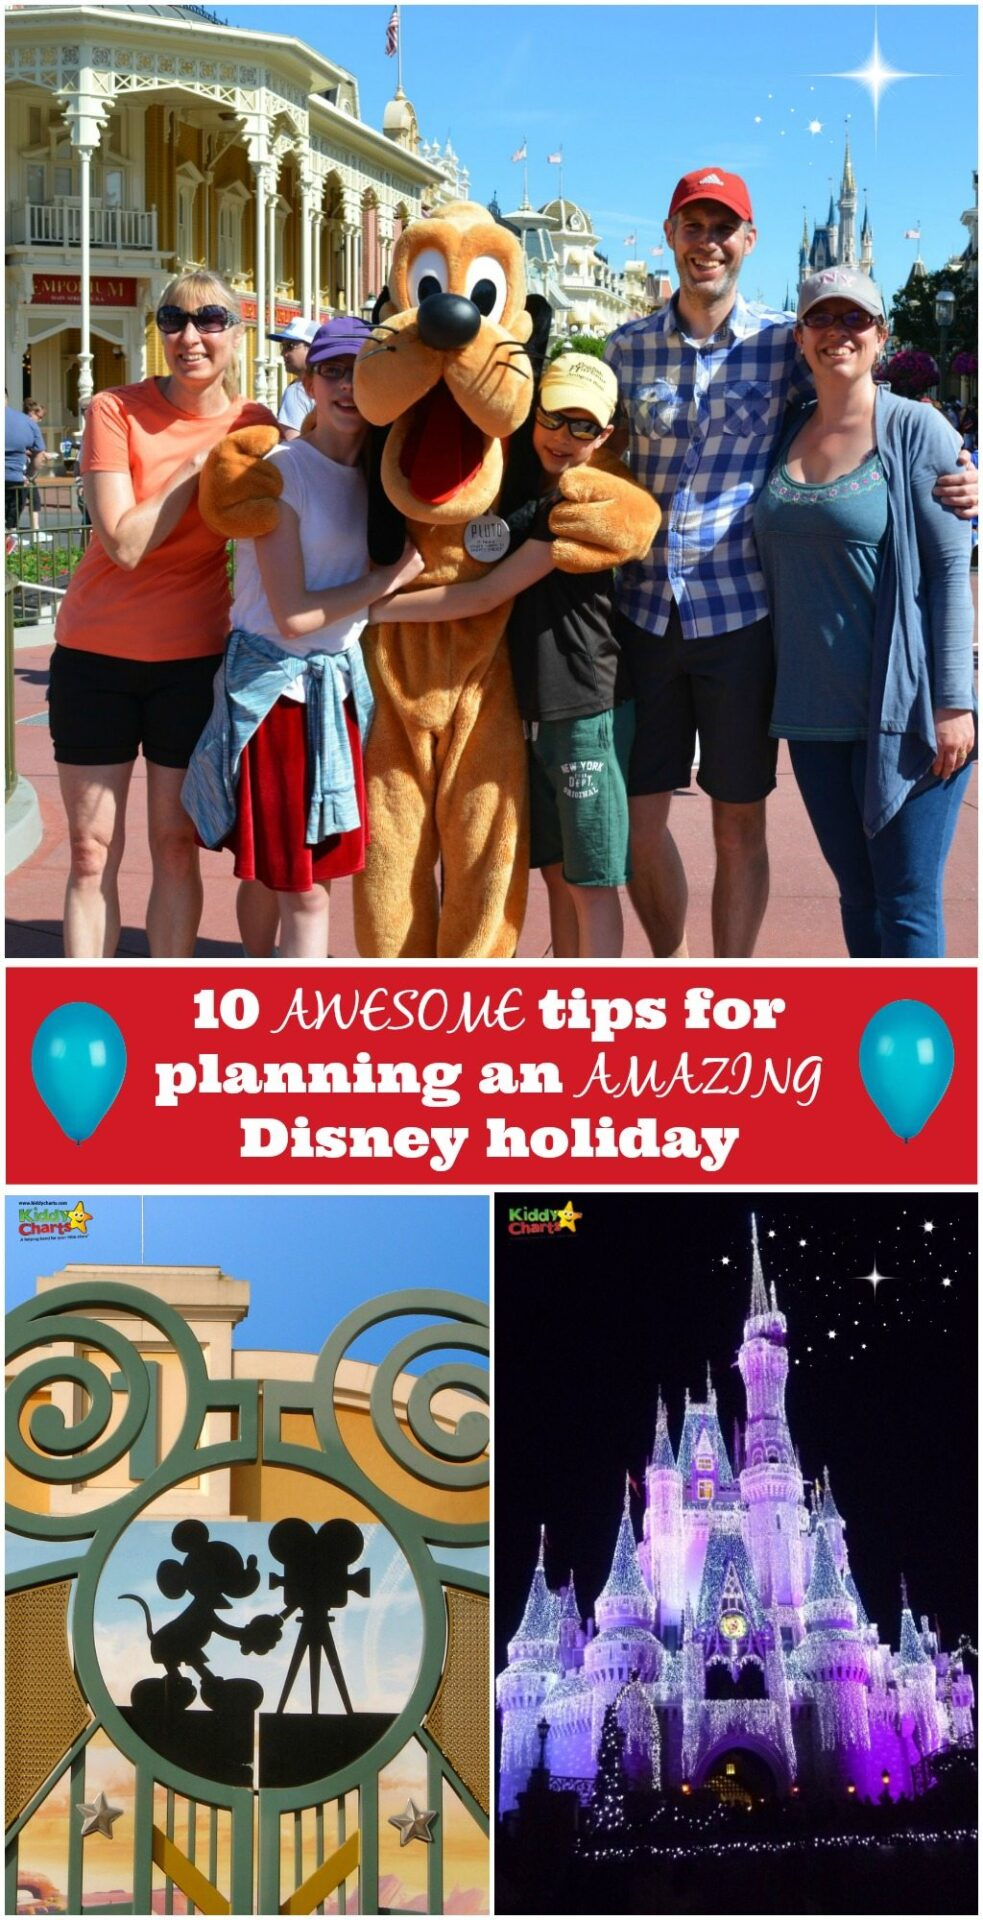 These are the tips we have for planning a holiday to Disney - it woked for us, and it'll work for you too. If its your first time, and even if yo have been before, we are sure to have som great Disney Tips for you, so pop along and check them out, so your holiday is the best it can be!